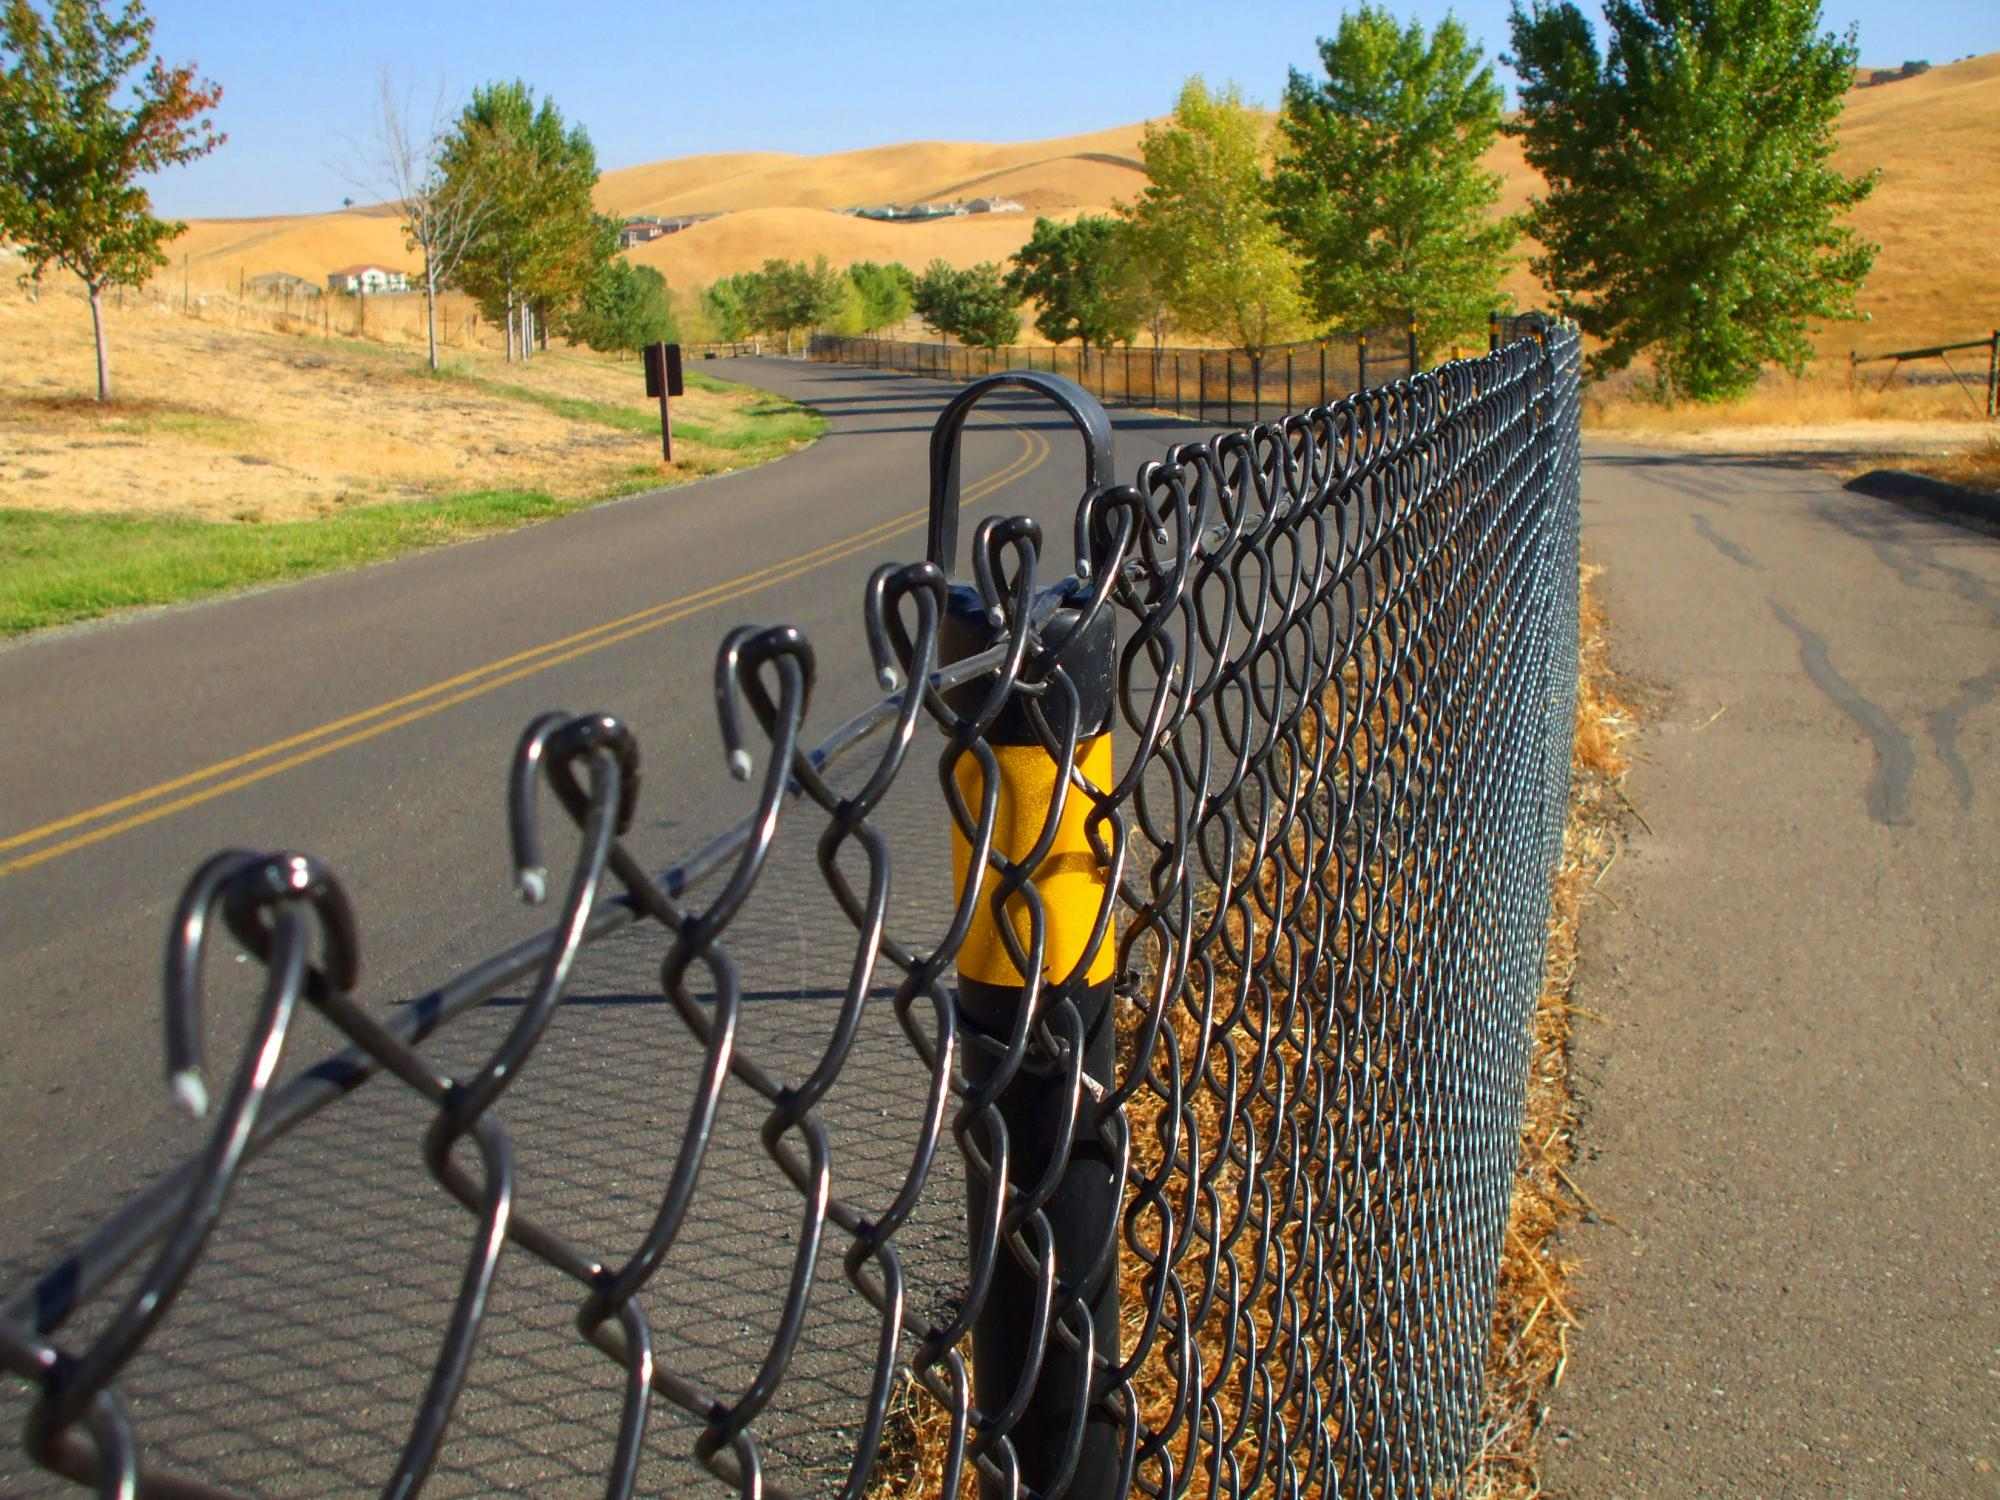 This is a picture of a chain link fence.